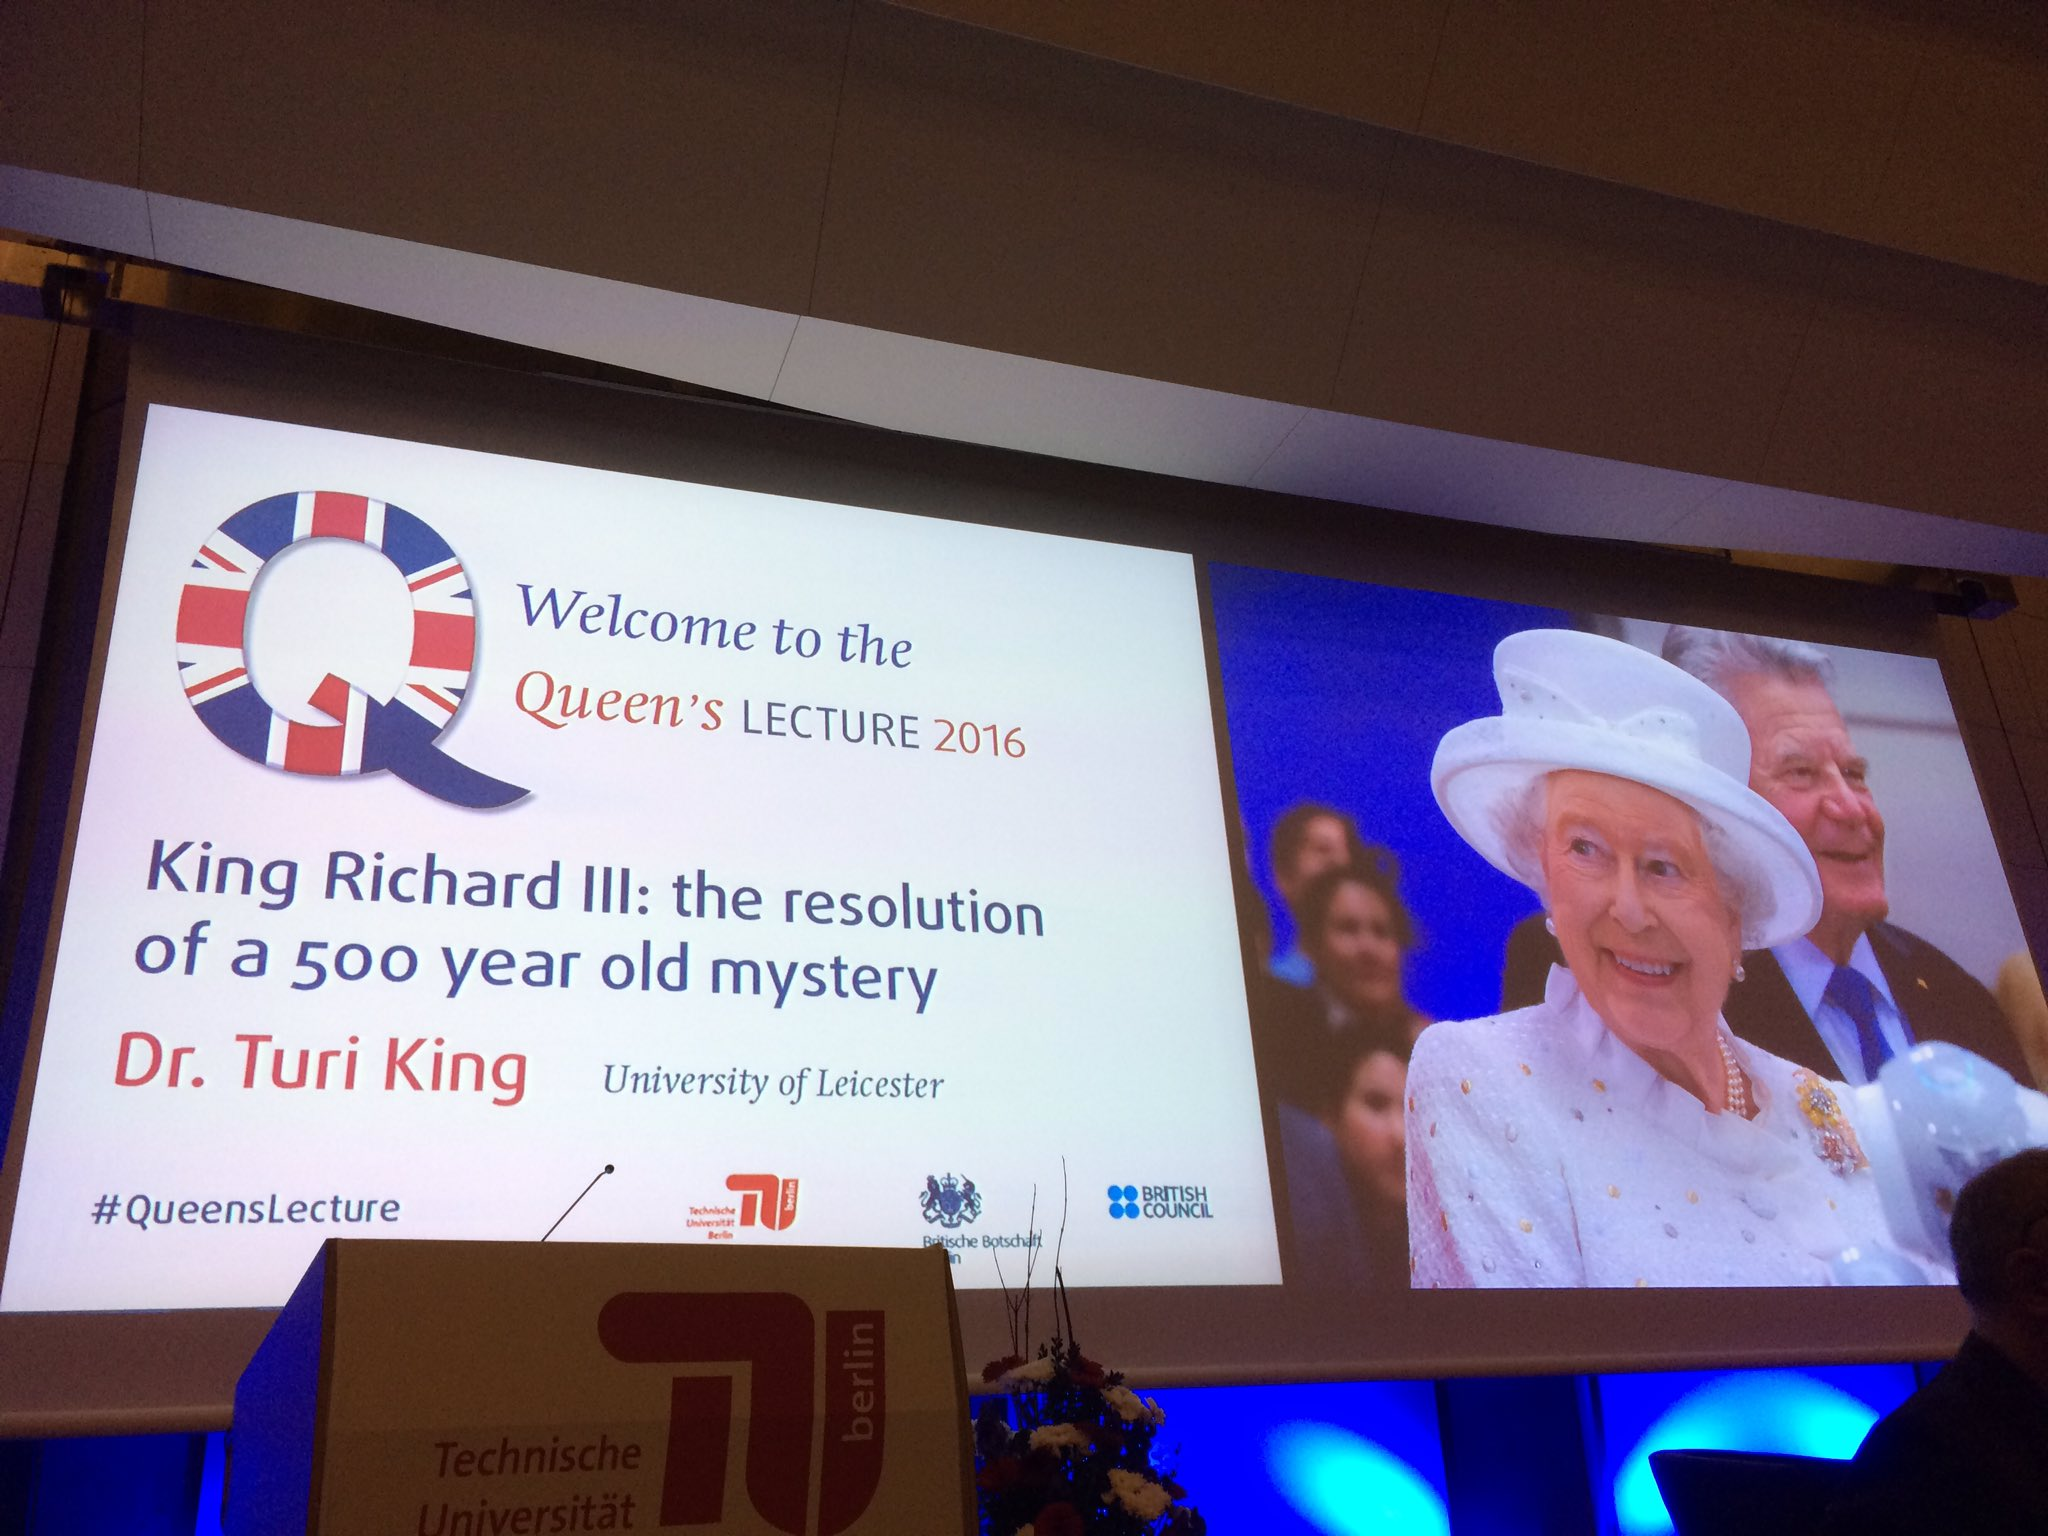 Here we go. It's a packed auditorium!'#QueensLecture @Turi__King @deBritish https://t.co/HJkbPKrOrC